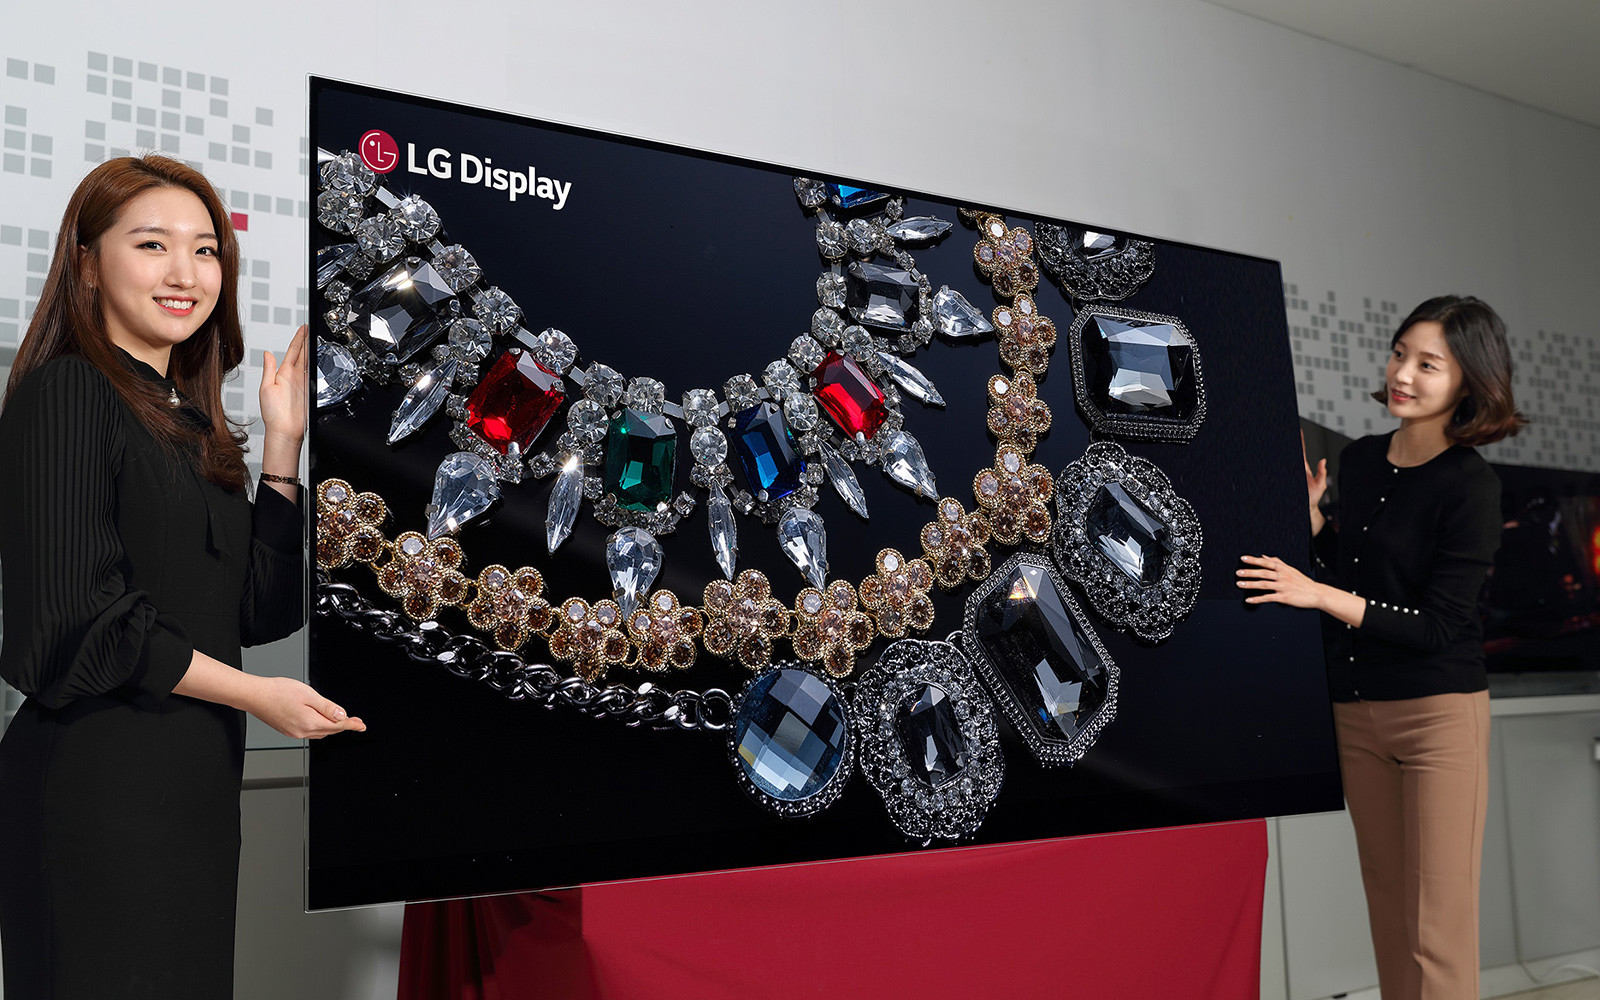 CES 2018: LG showcases 88-inches OLED display with an 8K resolution